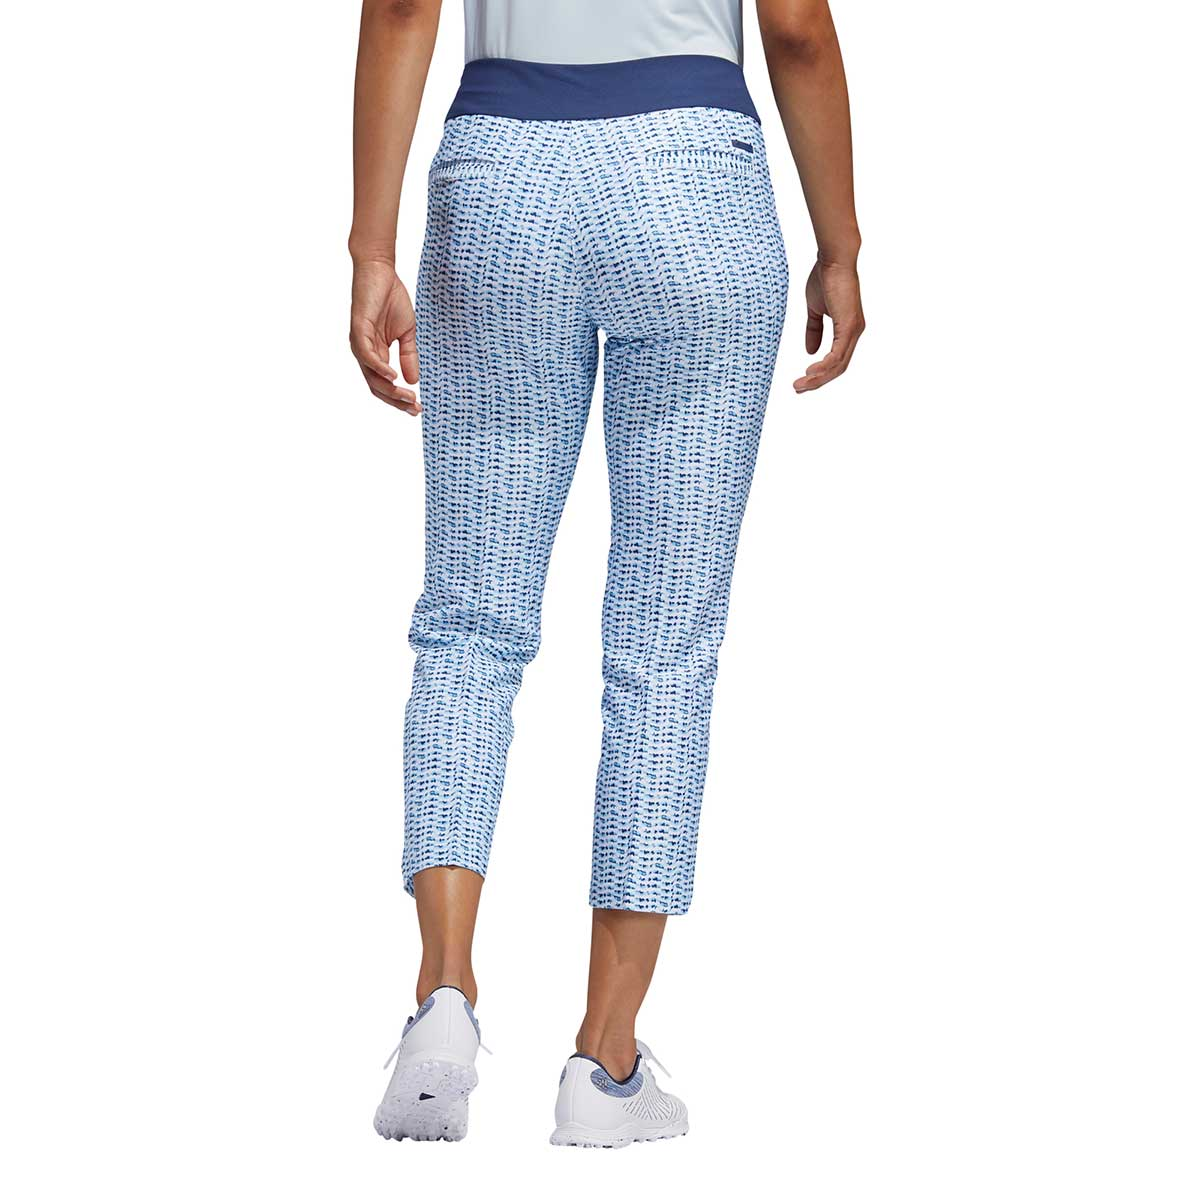 Adidas Women's Printed Pull-On Sky Tint Ankle Pants